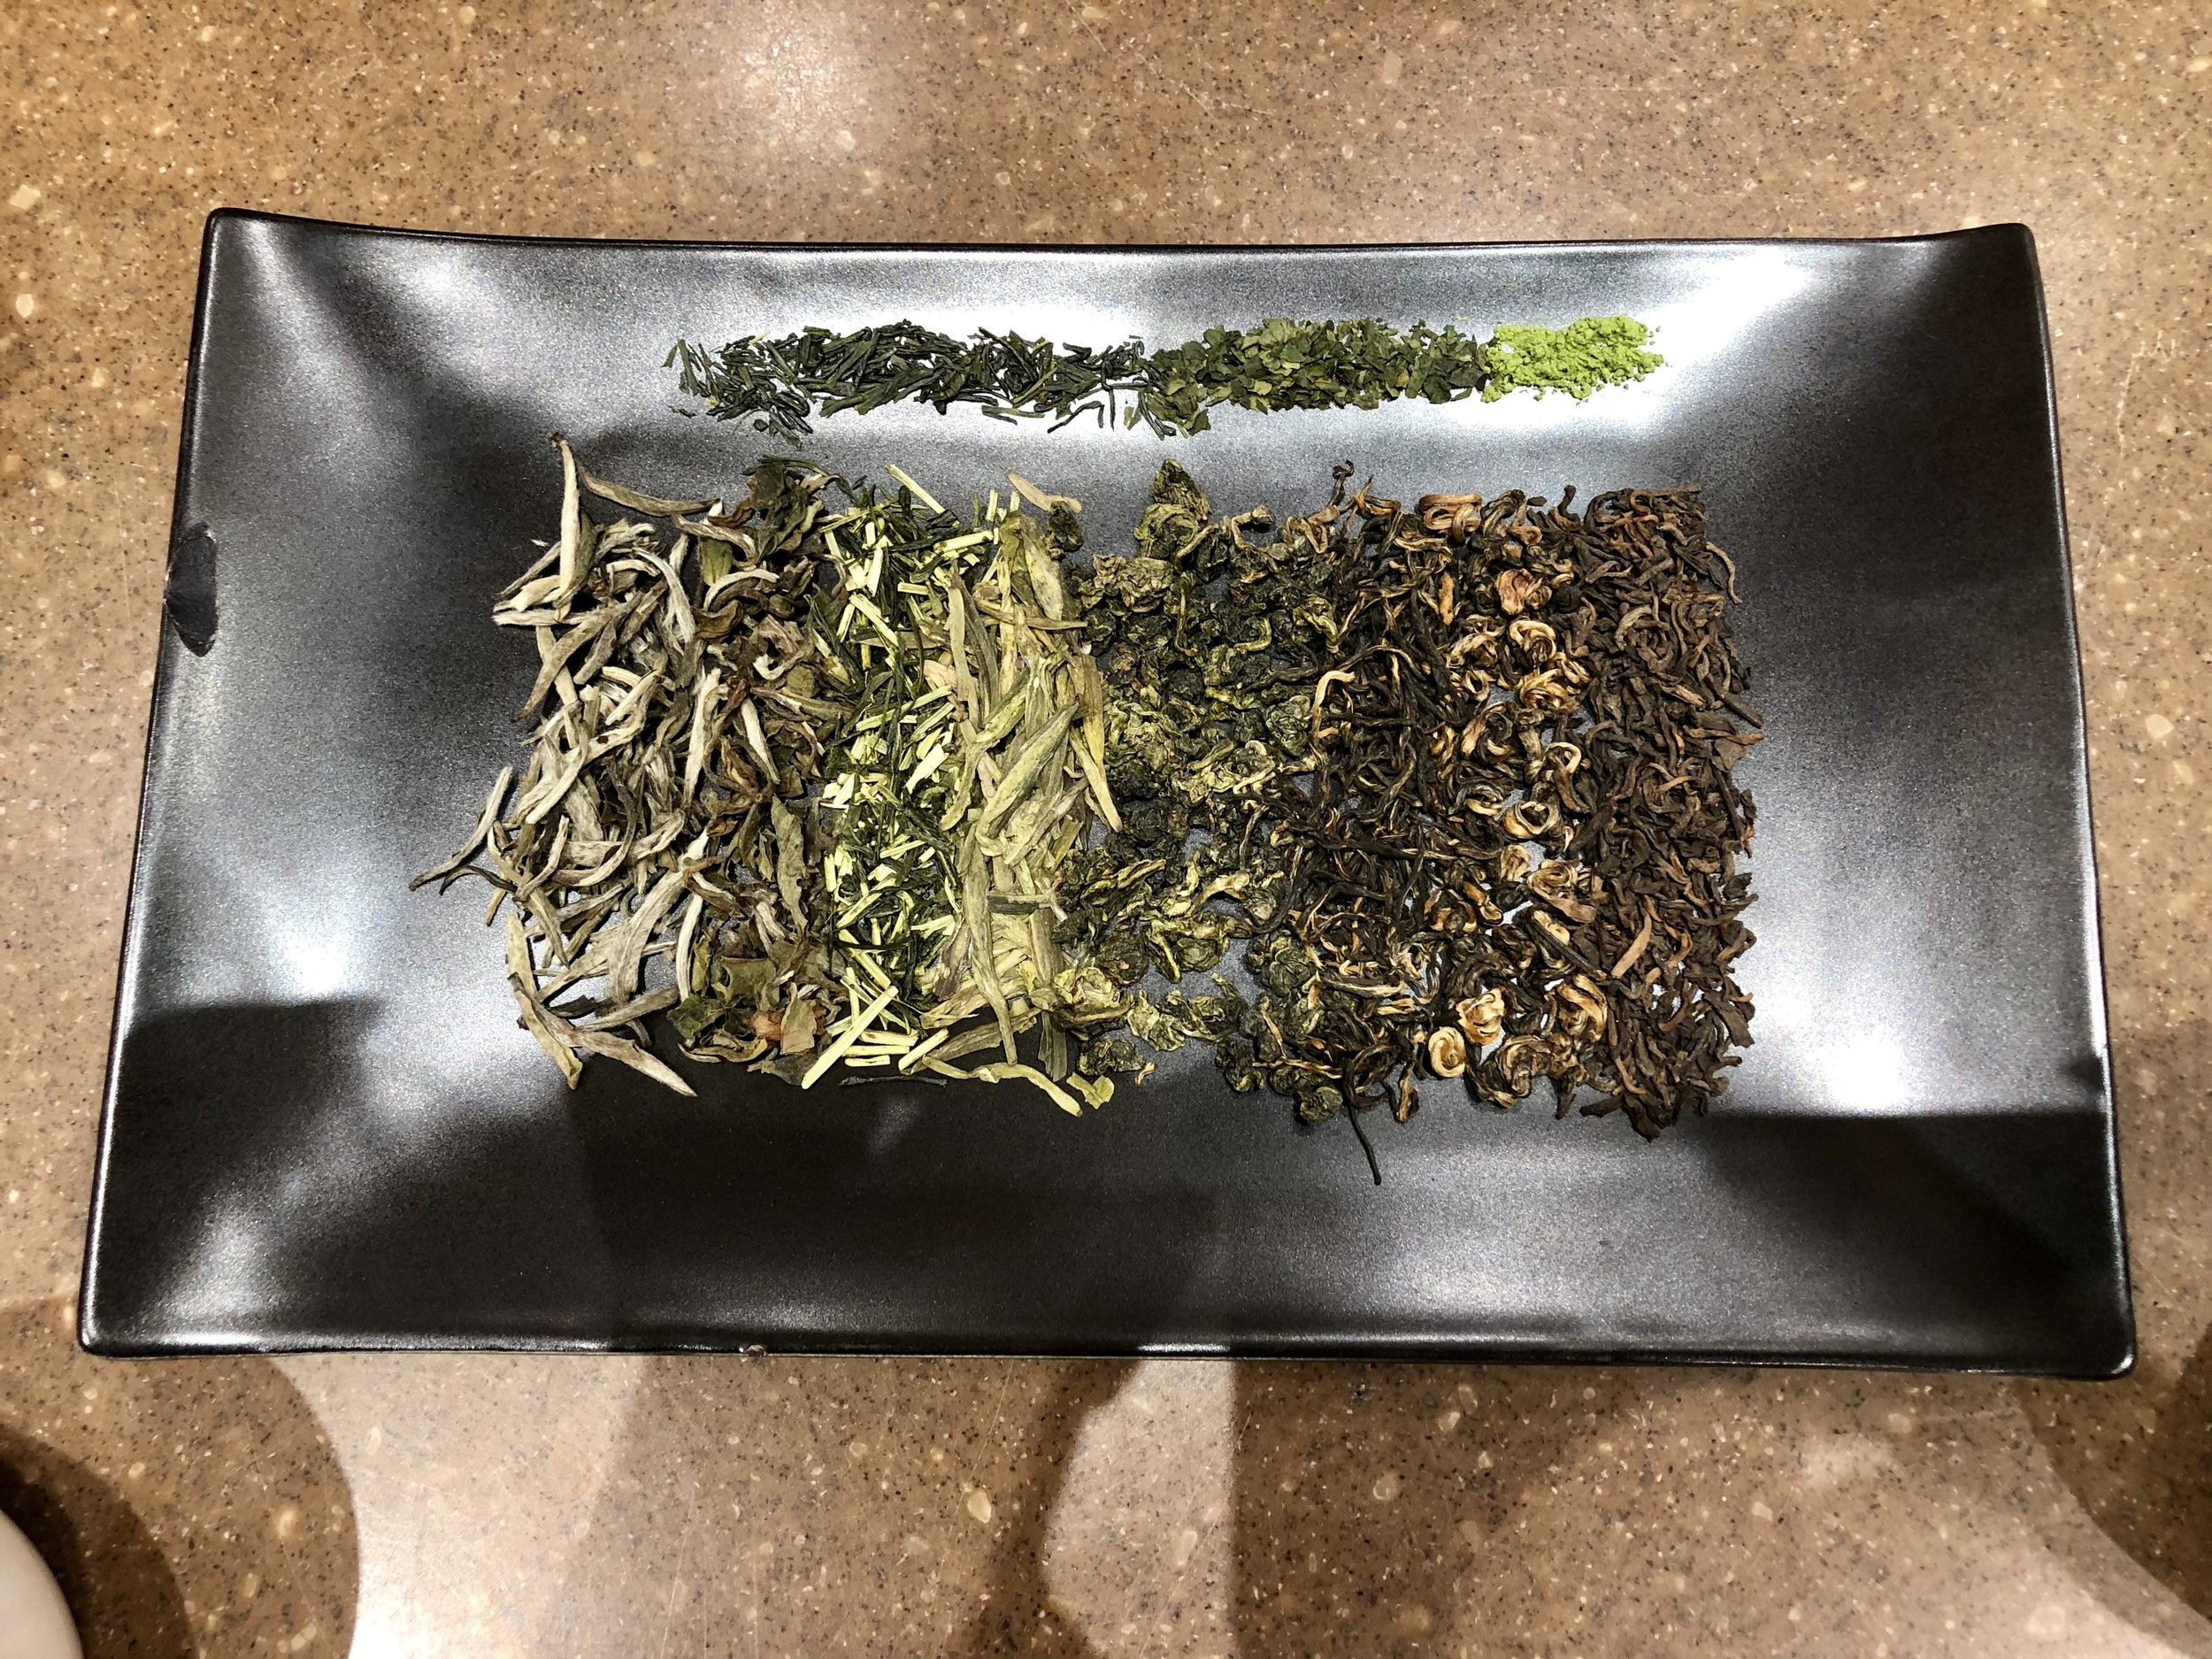 All teas come from the same plant. This, I think, is not unlike humanity. -